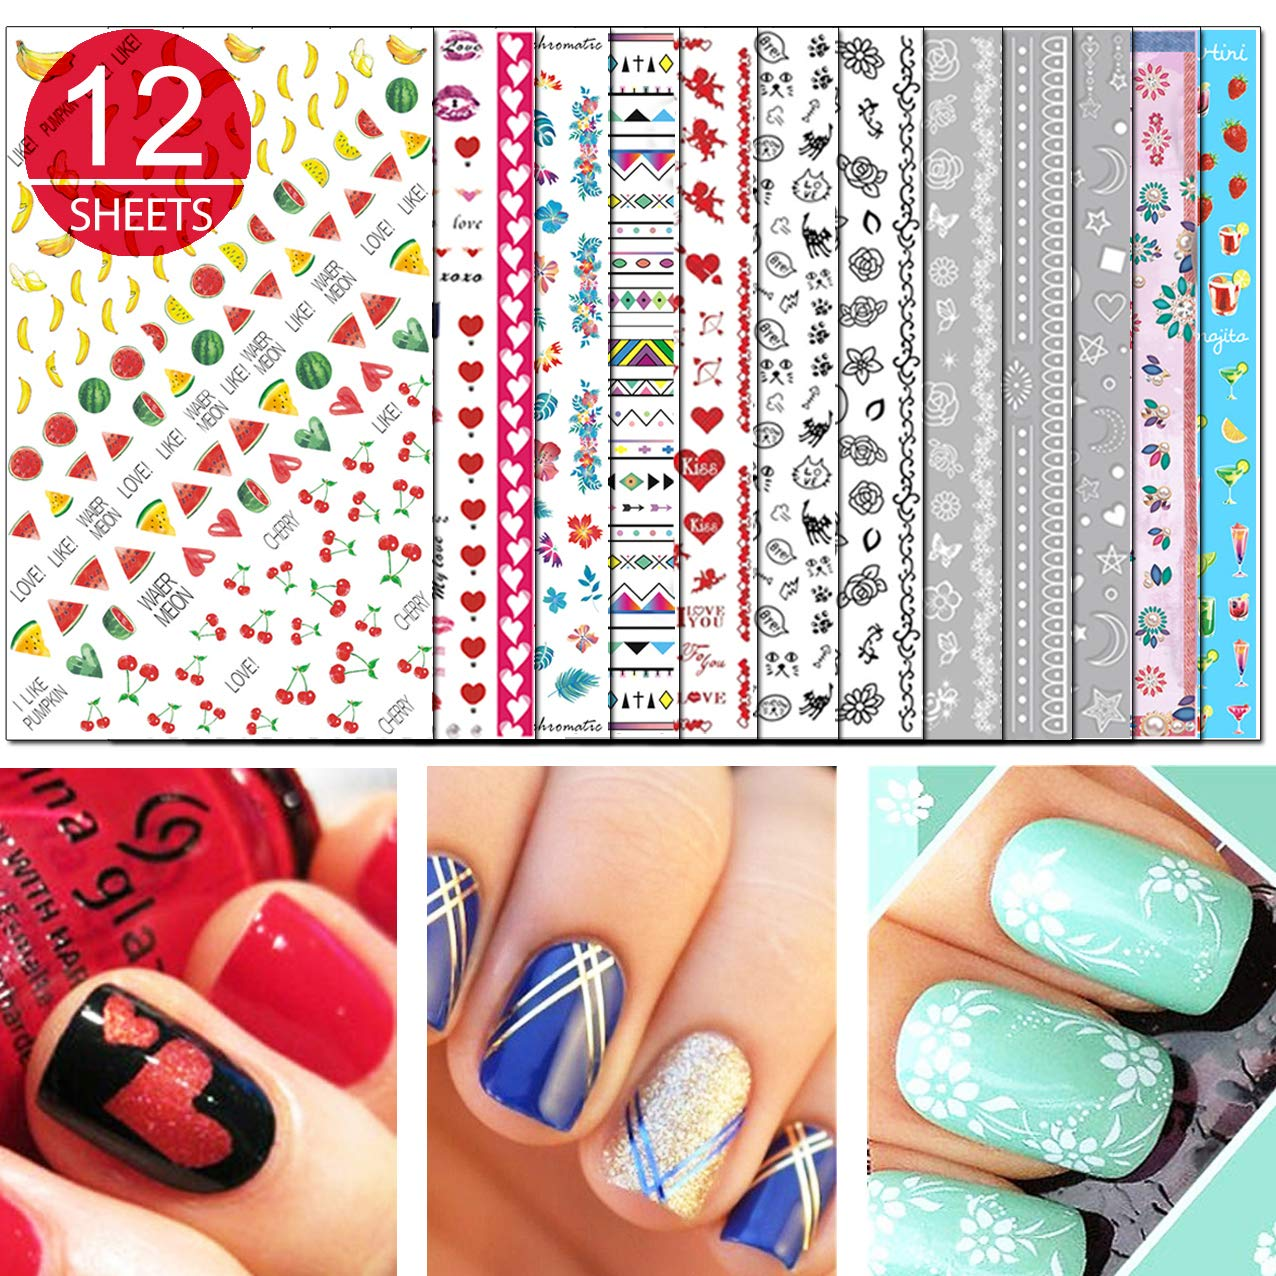 TailaiMei Nail Decals Stickers, 1600+ Pcs Self-Adhesive Tips DIY Nail Art Design Stencil (12 Large Sheets)